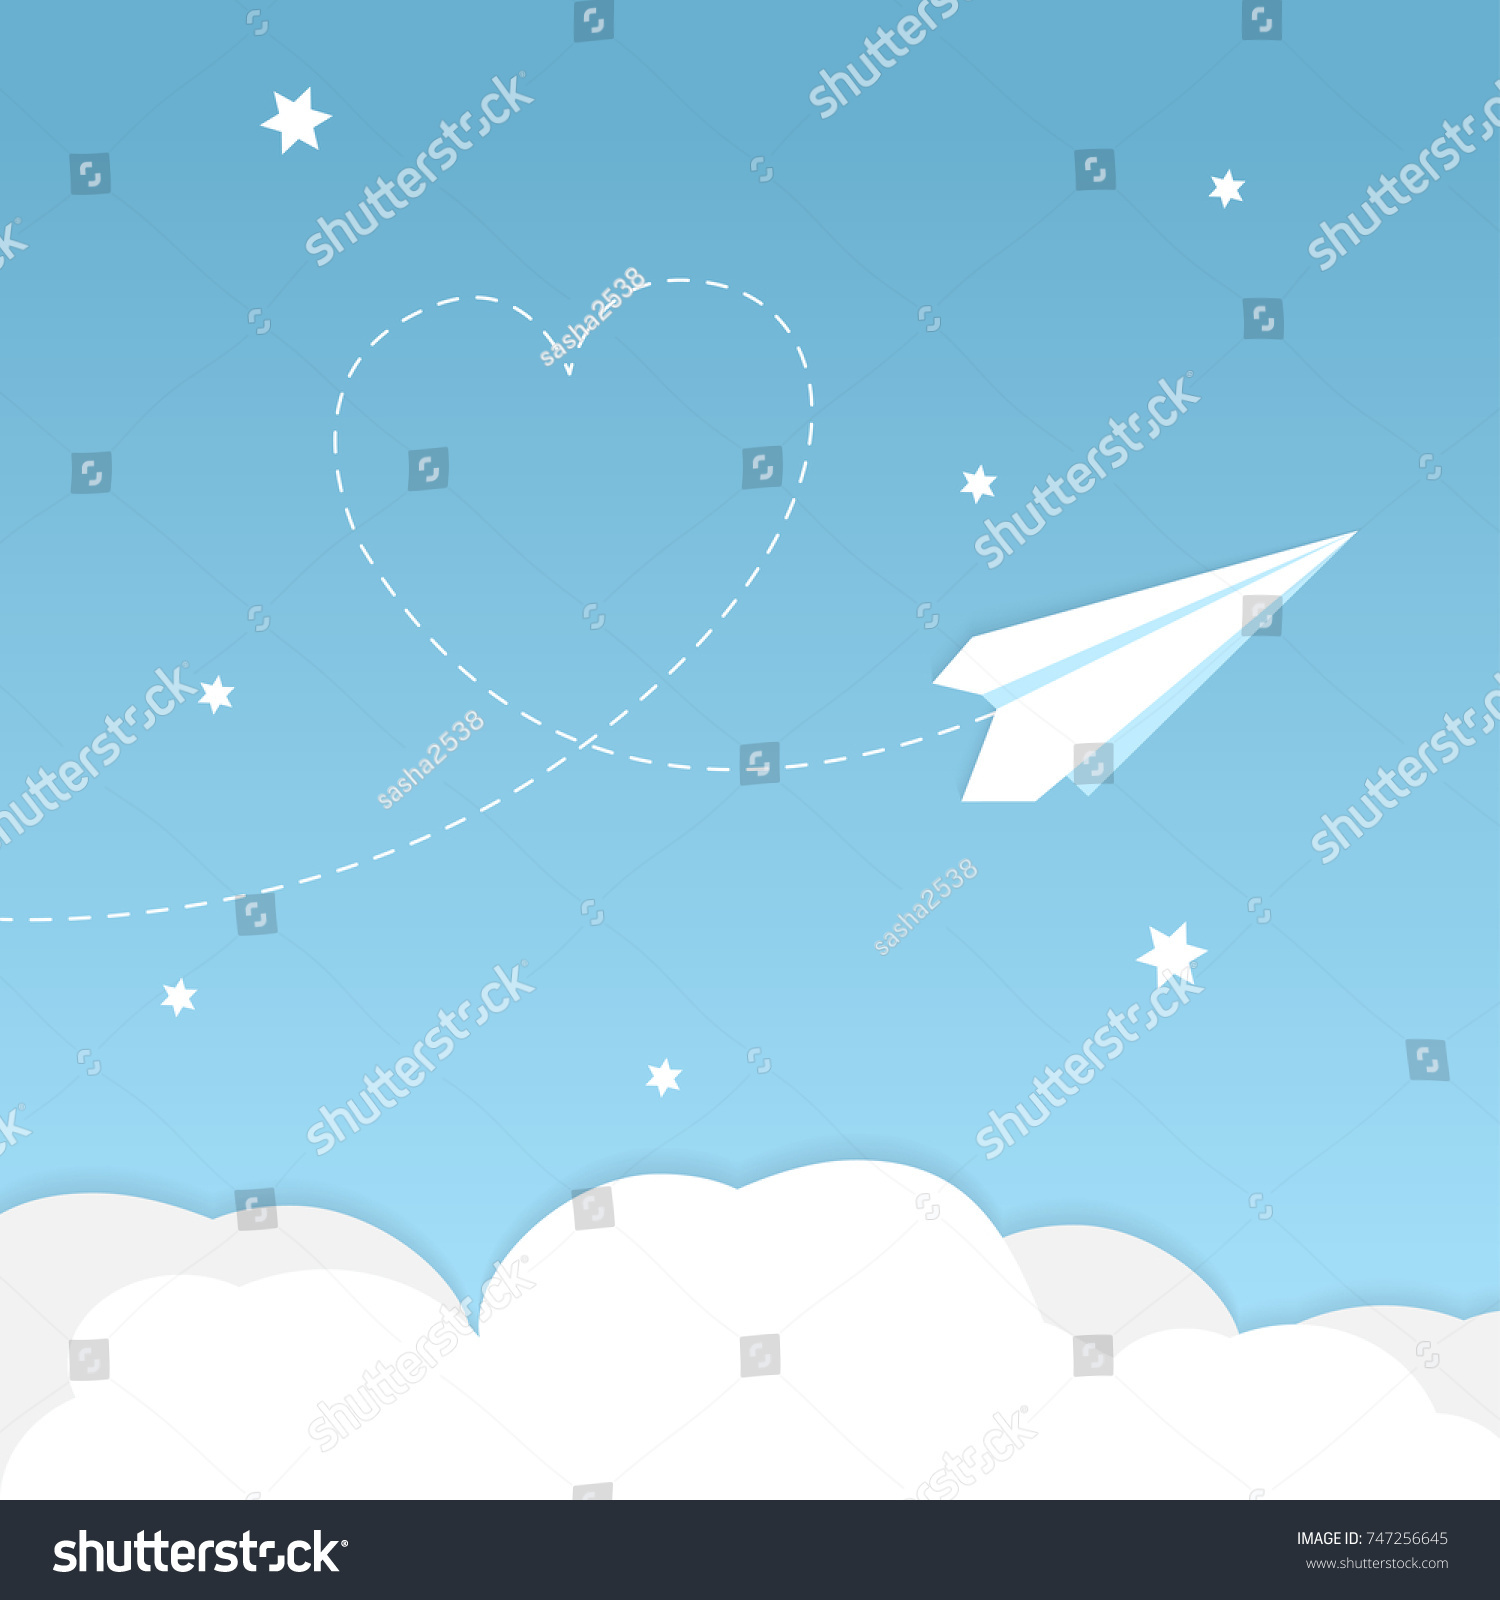 Cartoon Paper Airplane Background Heart Clouds Stock Vector